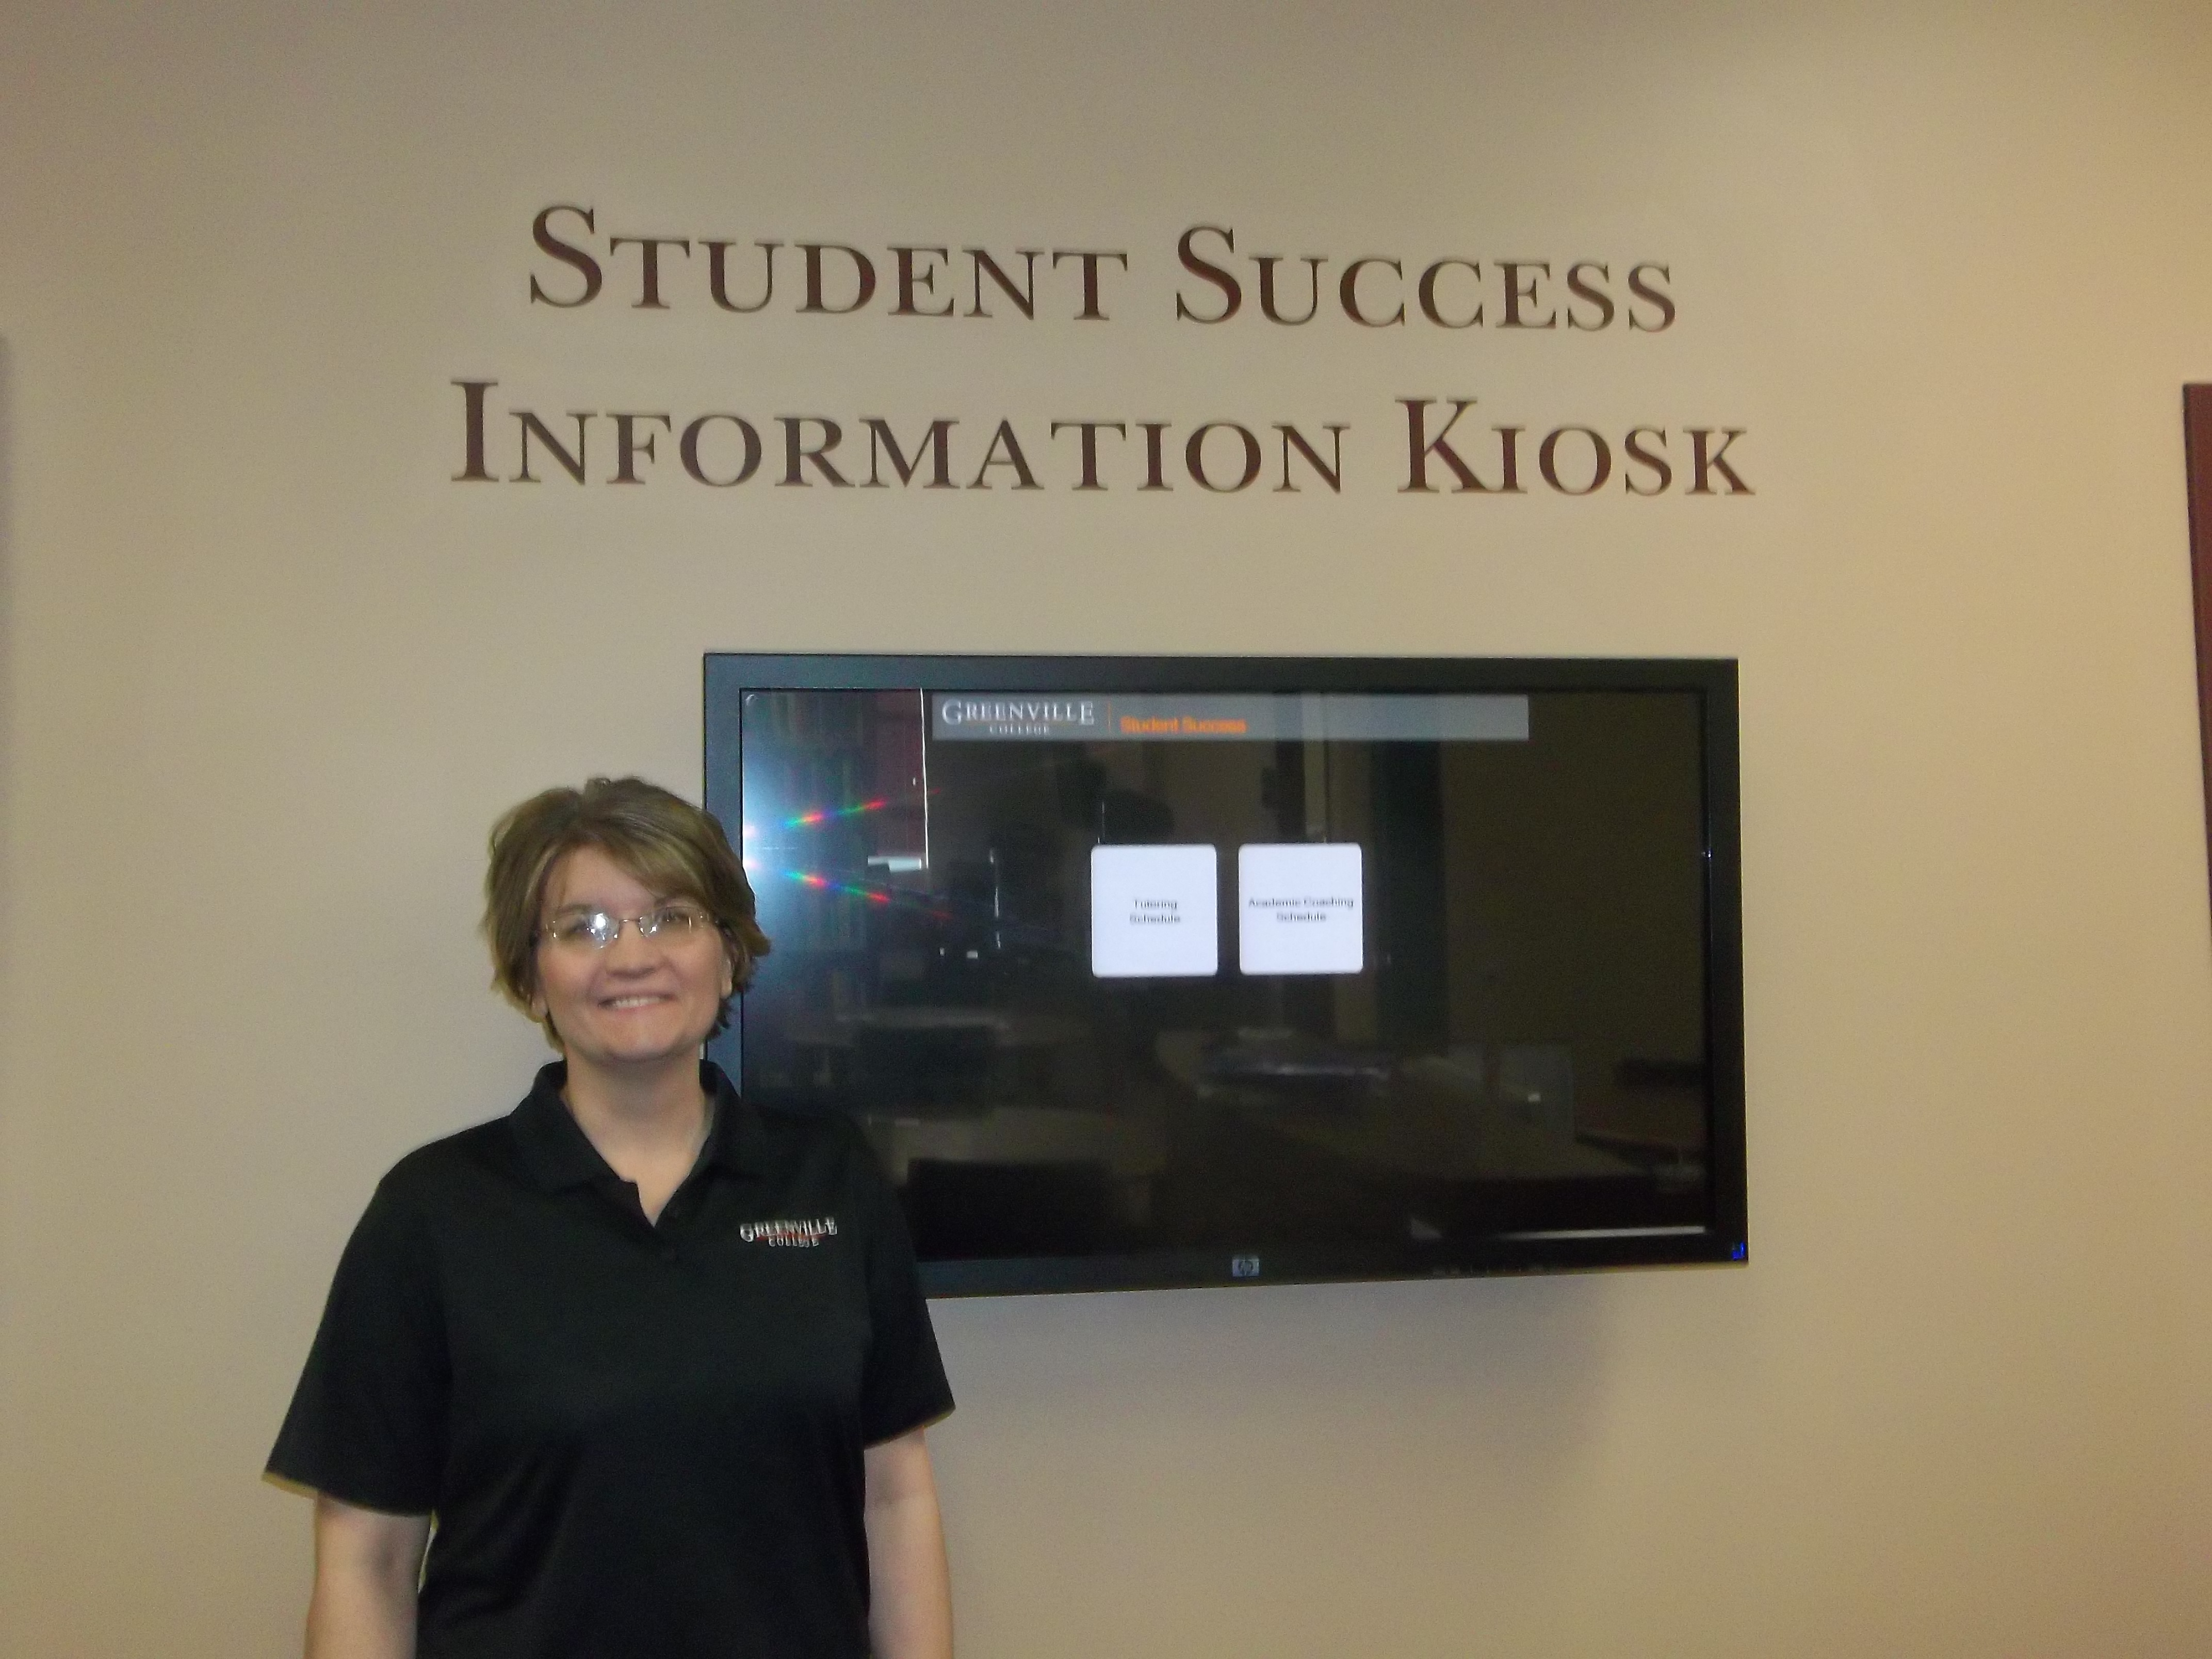 Gina Kester loves to help students find jobs during the school year and the summer. She works with peer tutoring and is always willing to help students out.